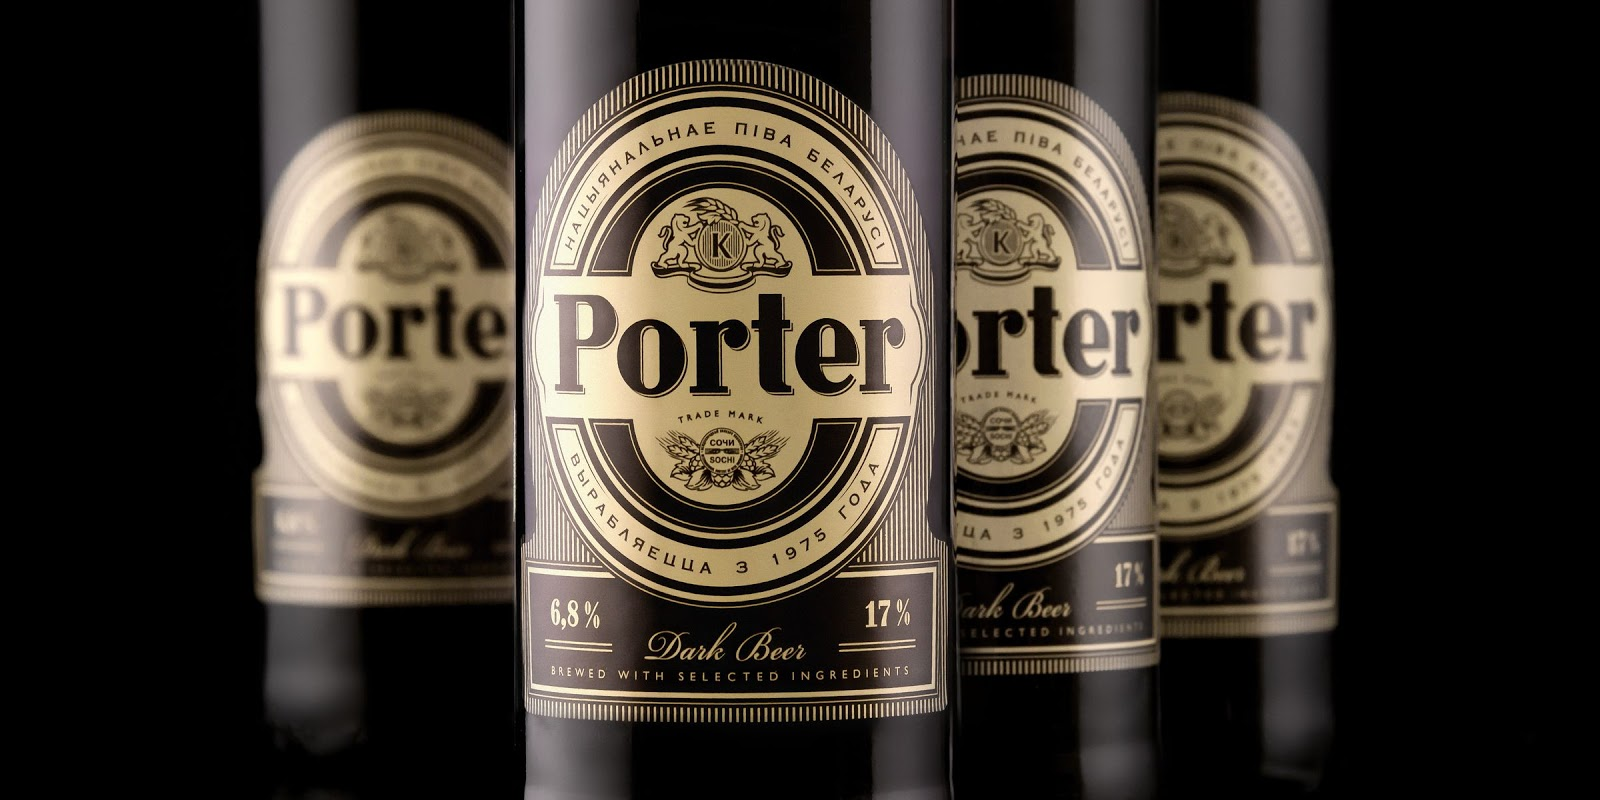 Le Meilleur Porter Beer Redesigned On Packaging Of The World Ce Mois Ci